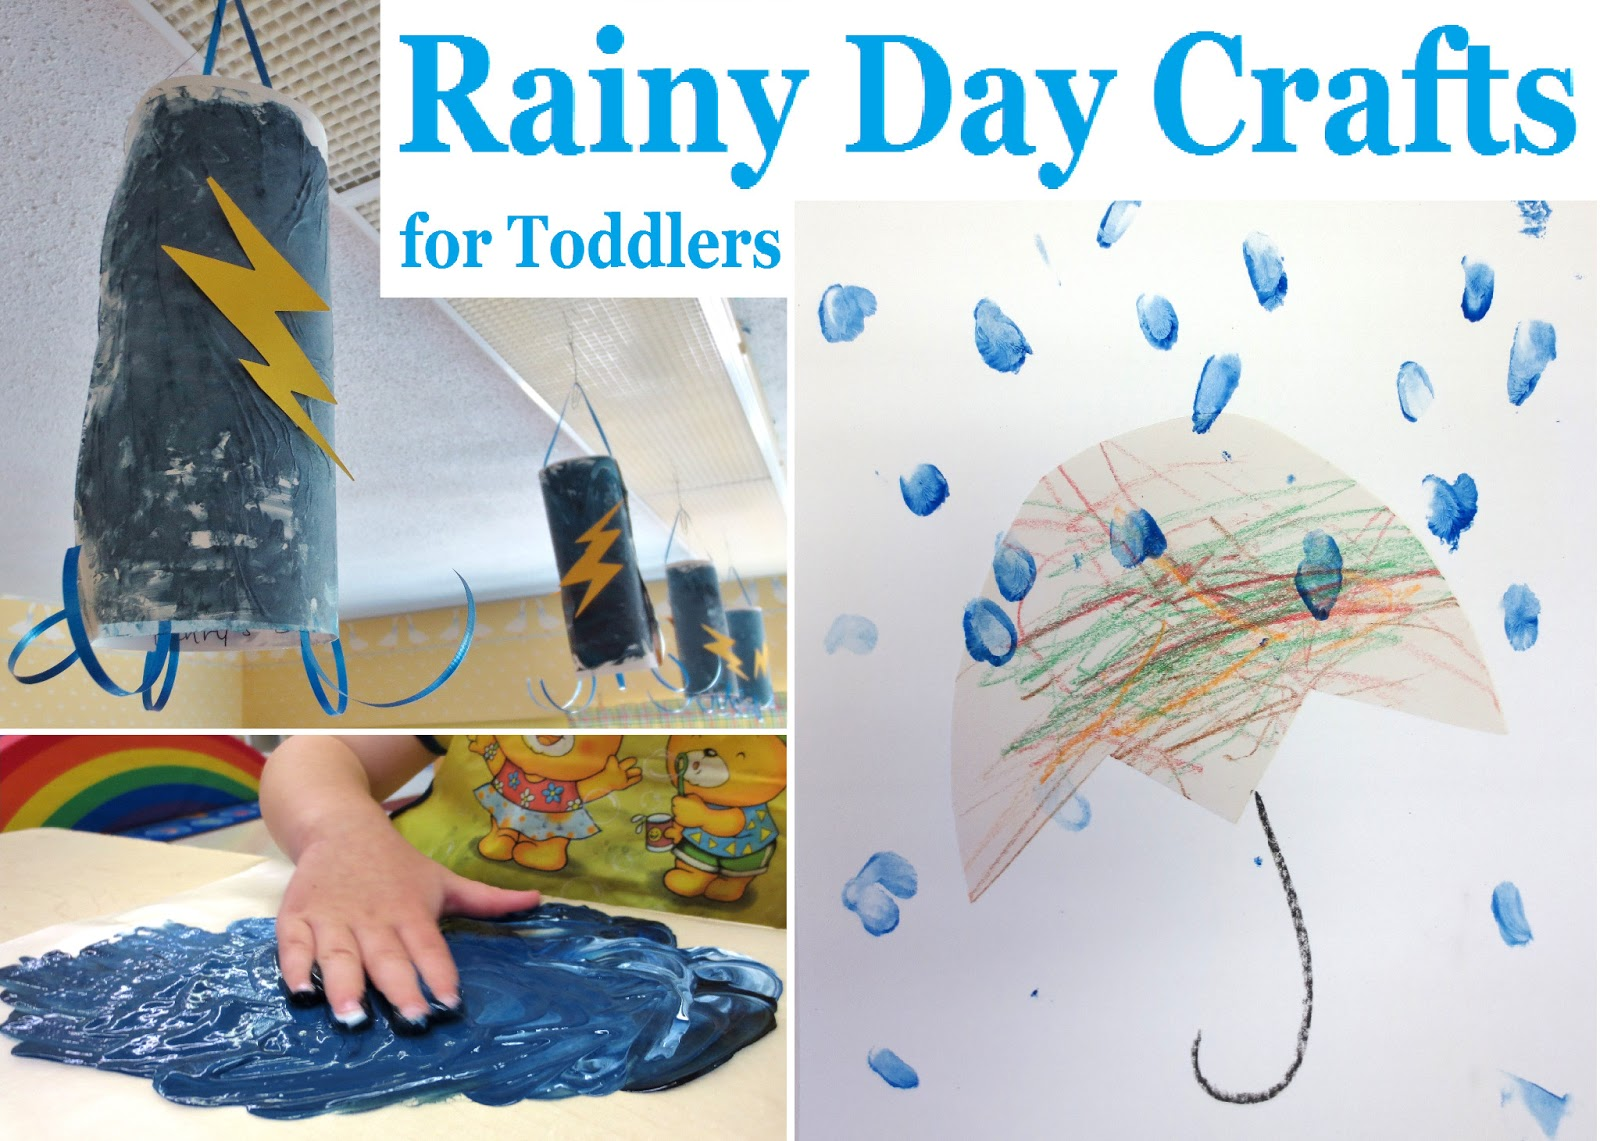 Princesses Pies Amp Preschool Pizzazz Rainy Day Crafts For Toddlers